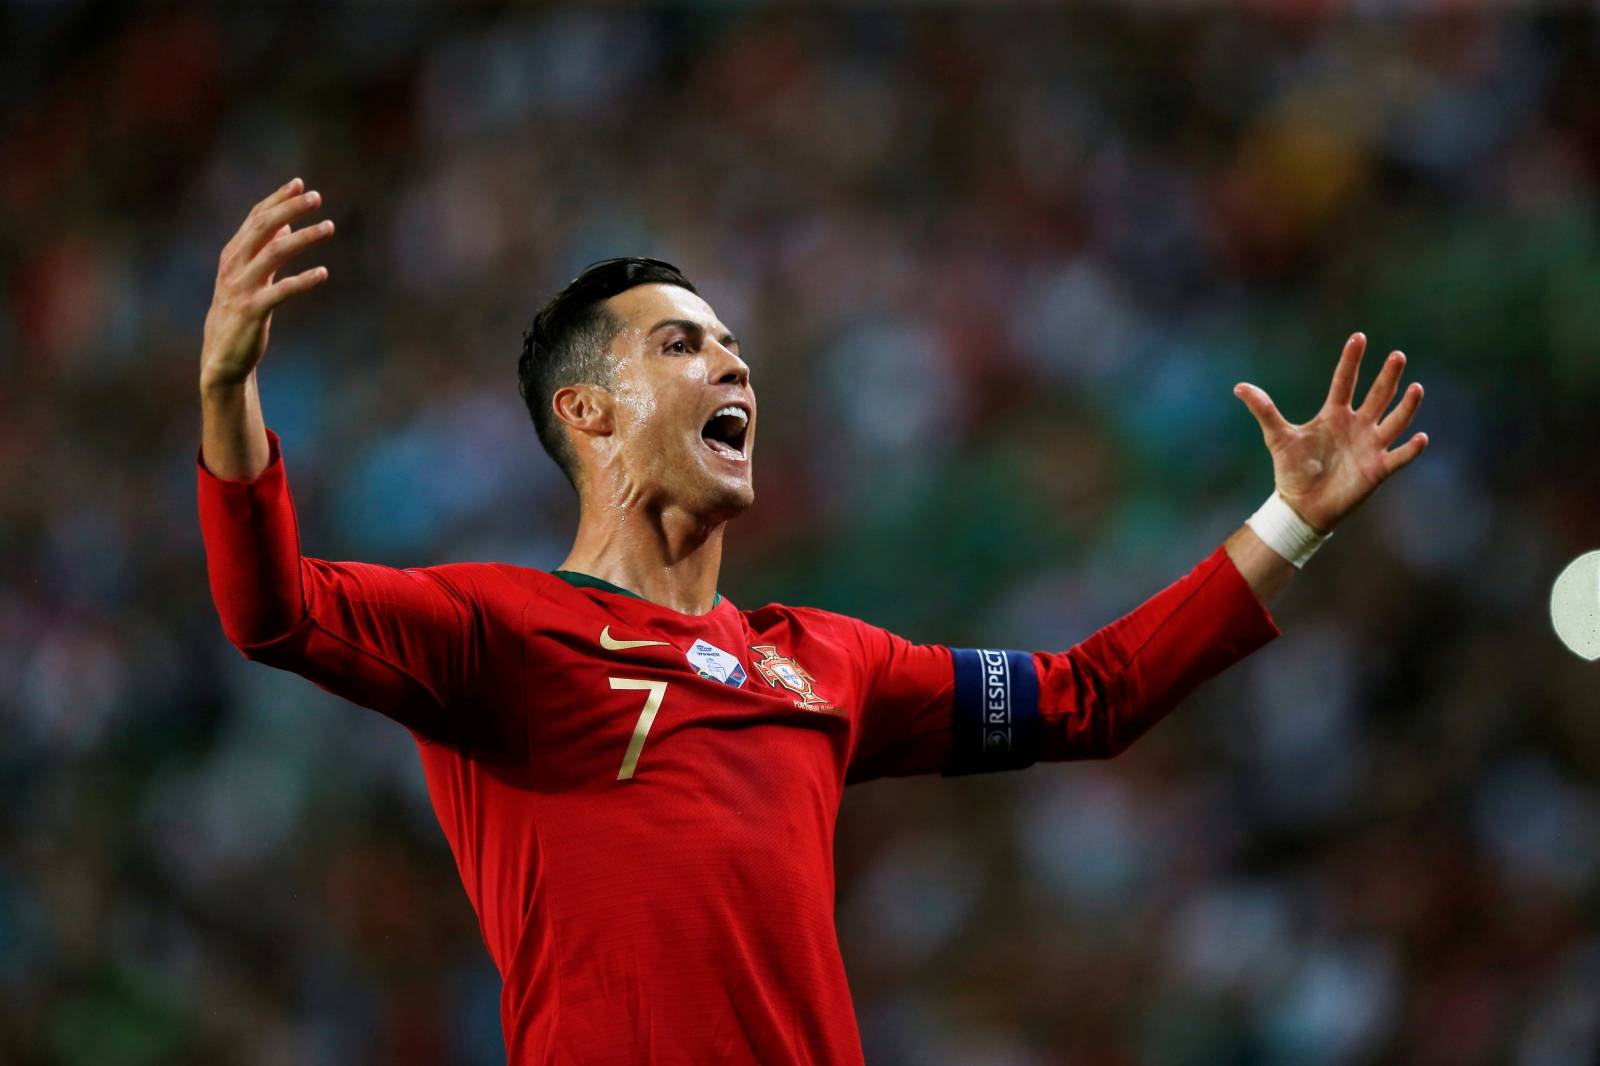 Euro 2020 Qualifier - Group B - Portugal v Luxembourg